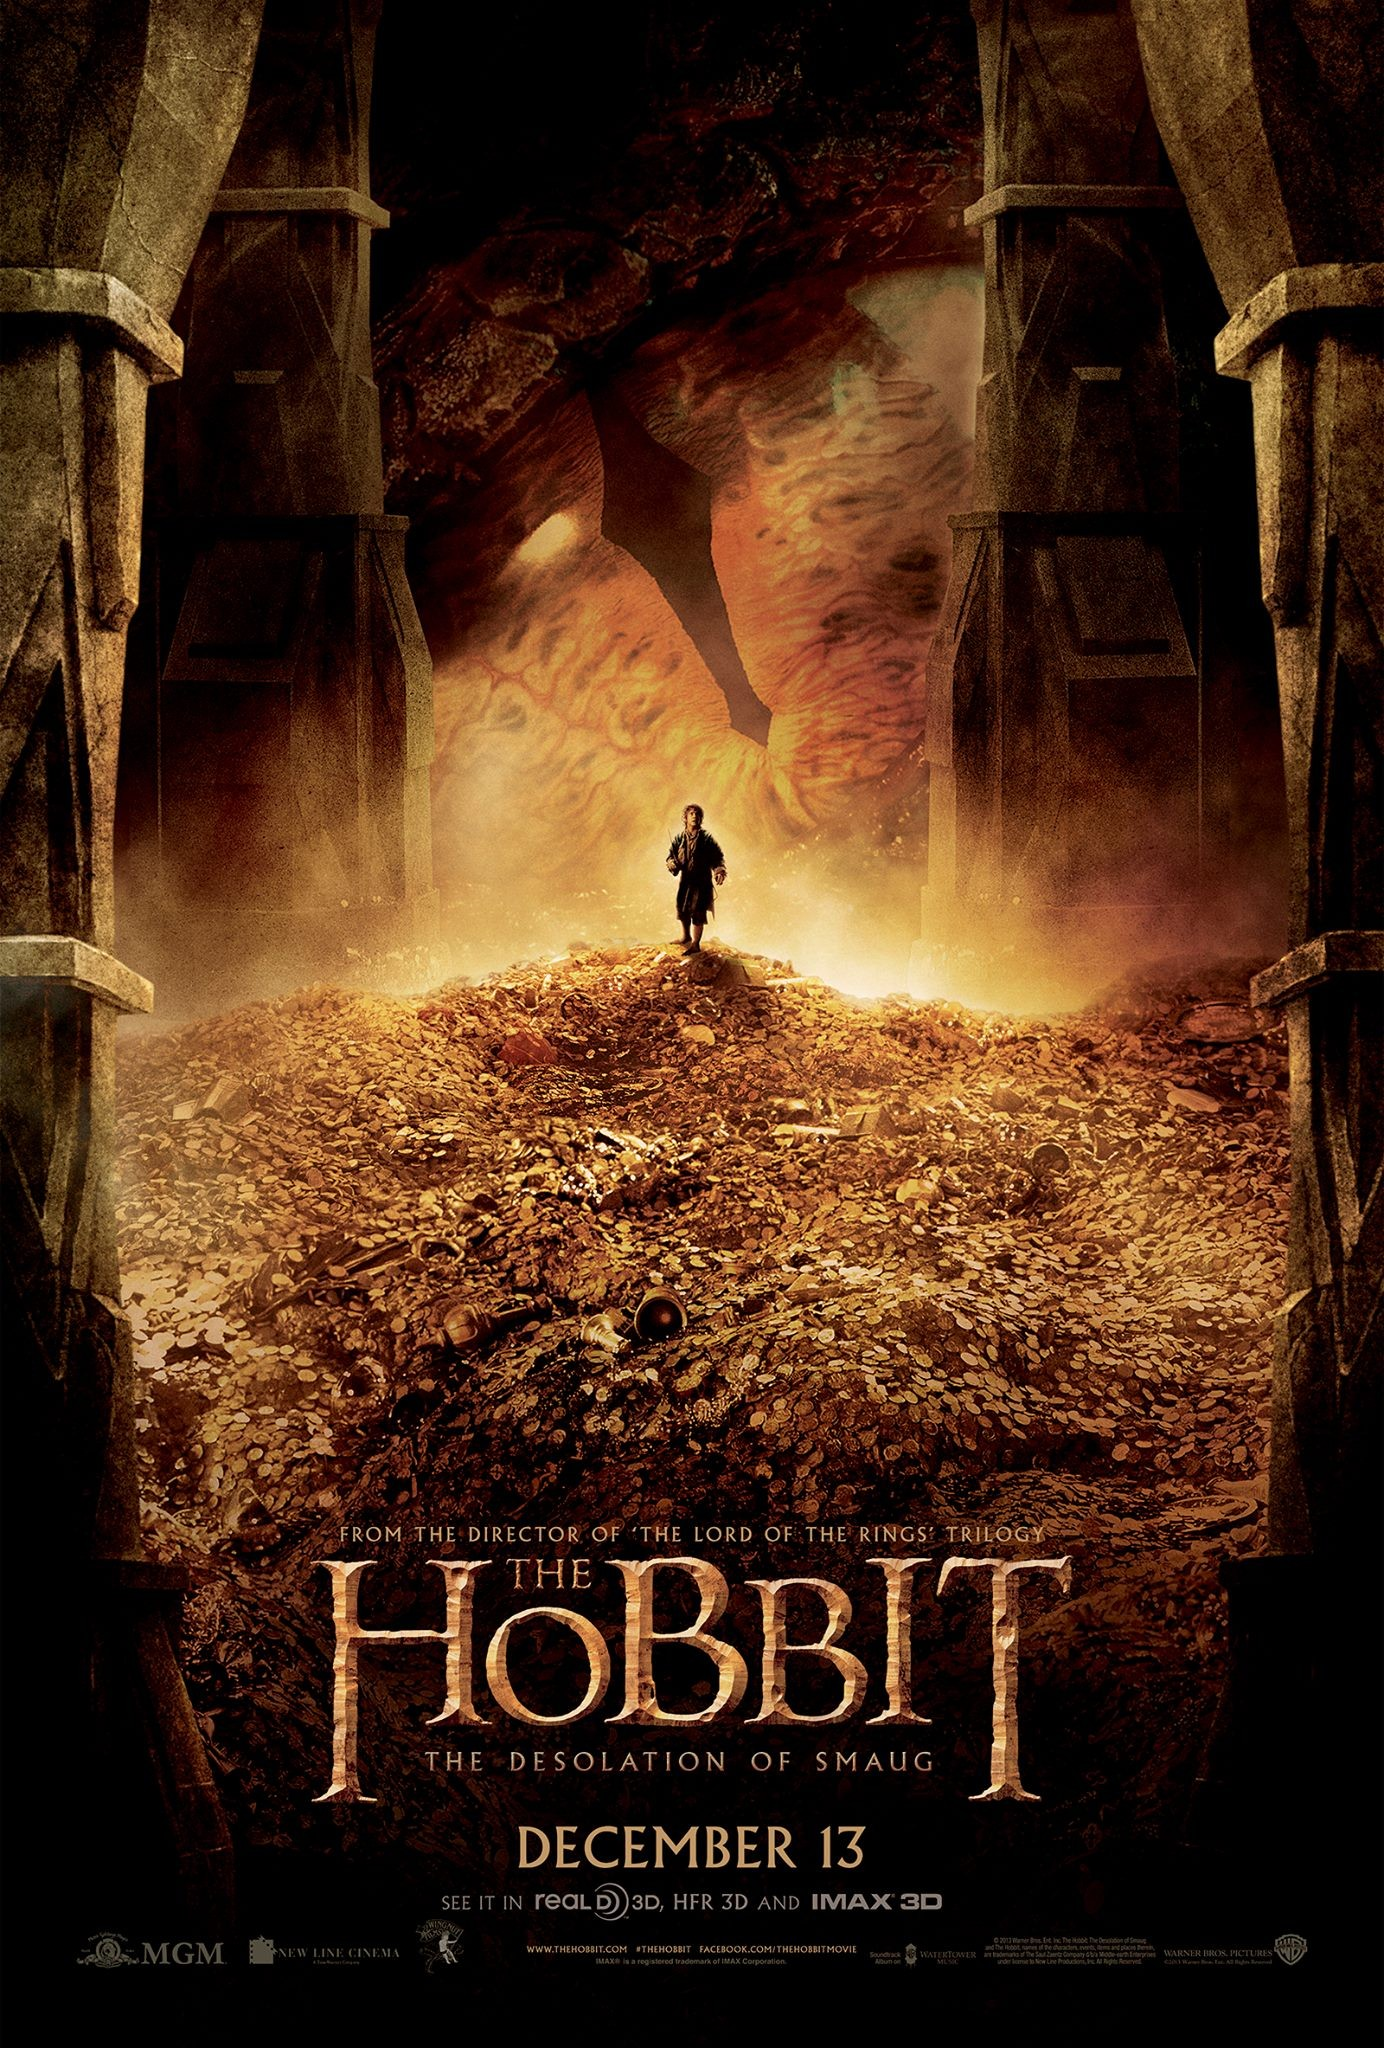 The Hobbit The Desolation Of Smaug-Official Poster Banner PROMO POSTER XXLG-16DEZEMBRO2013